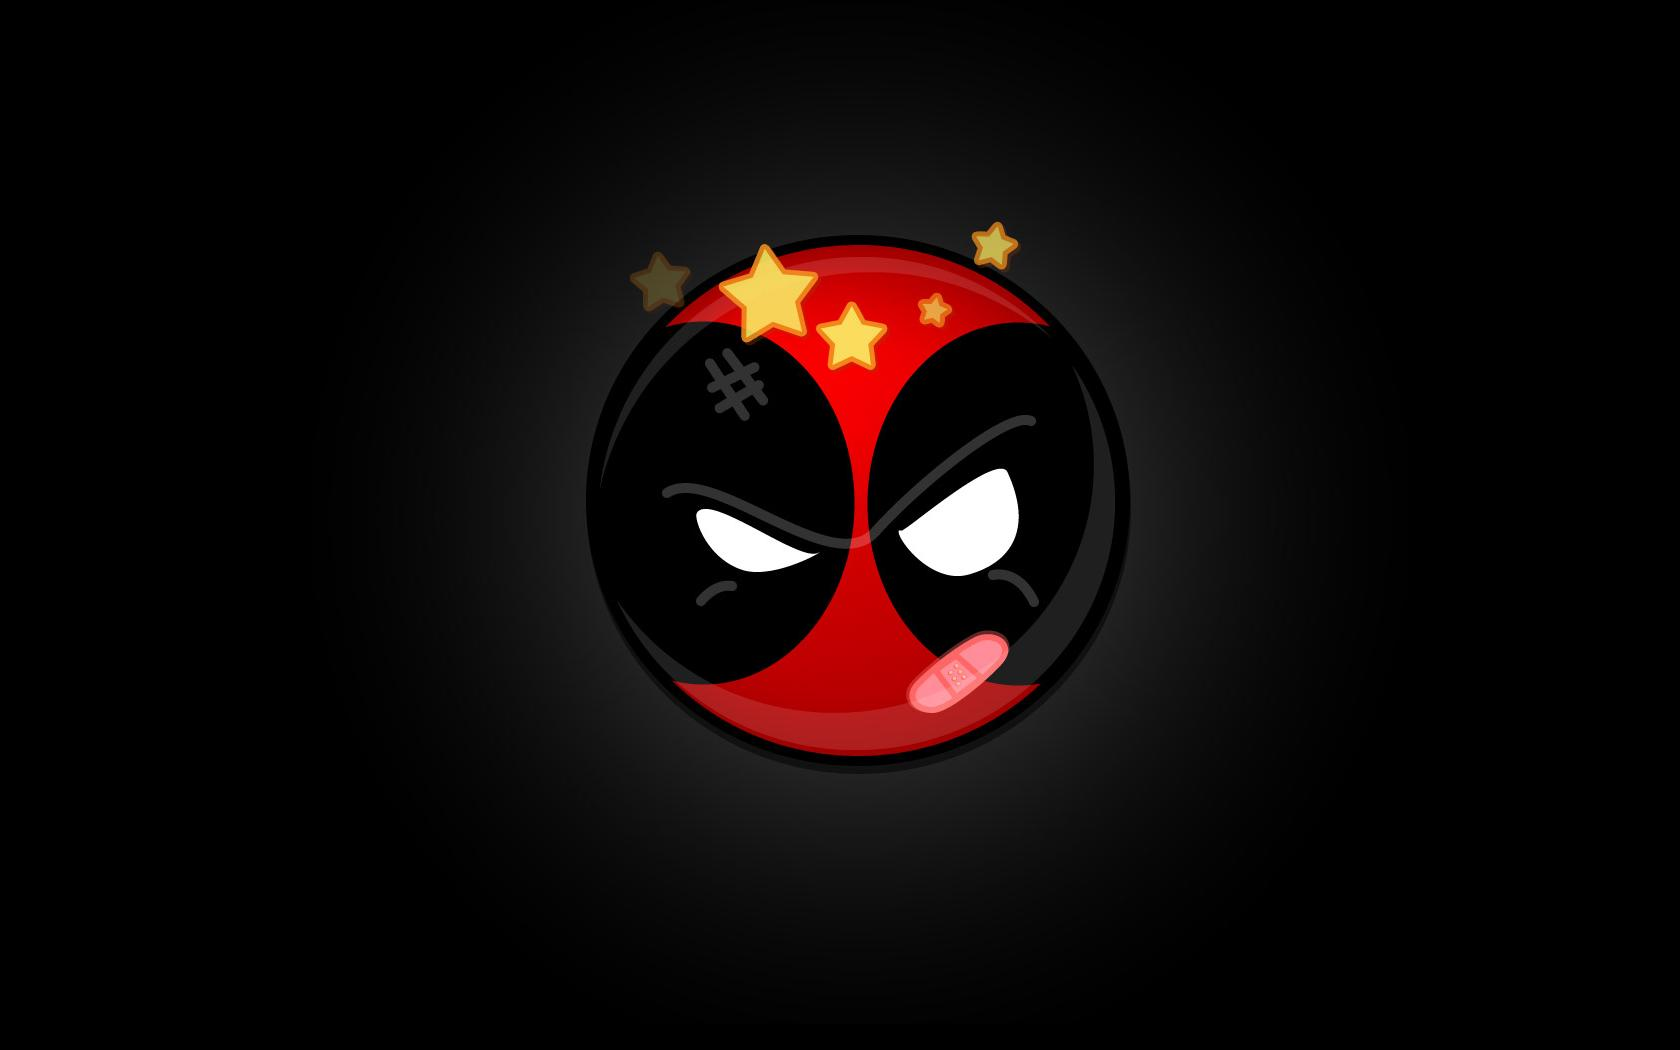 Funny Deadpool Wallpaper 1680x1050 Funny Deadpool Wade Wilson 1680x1050